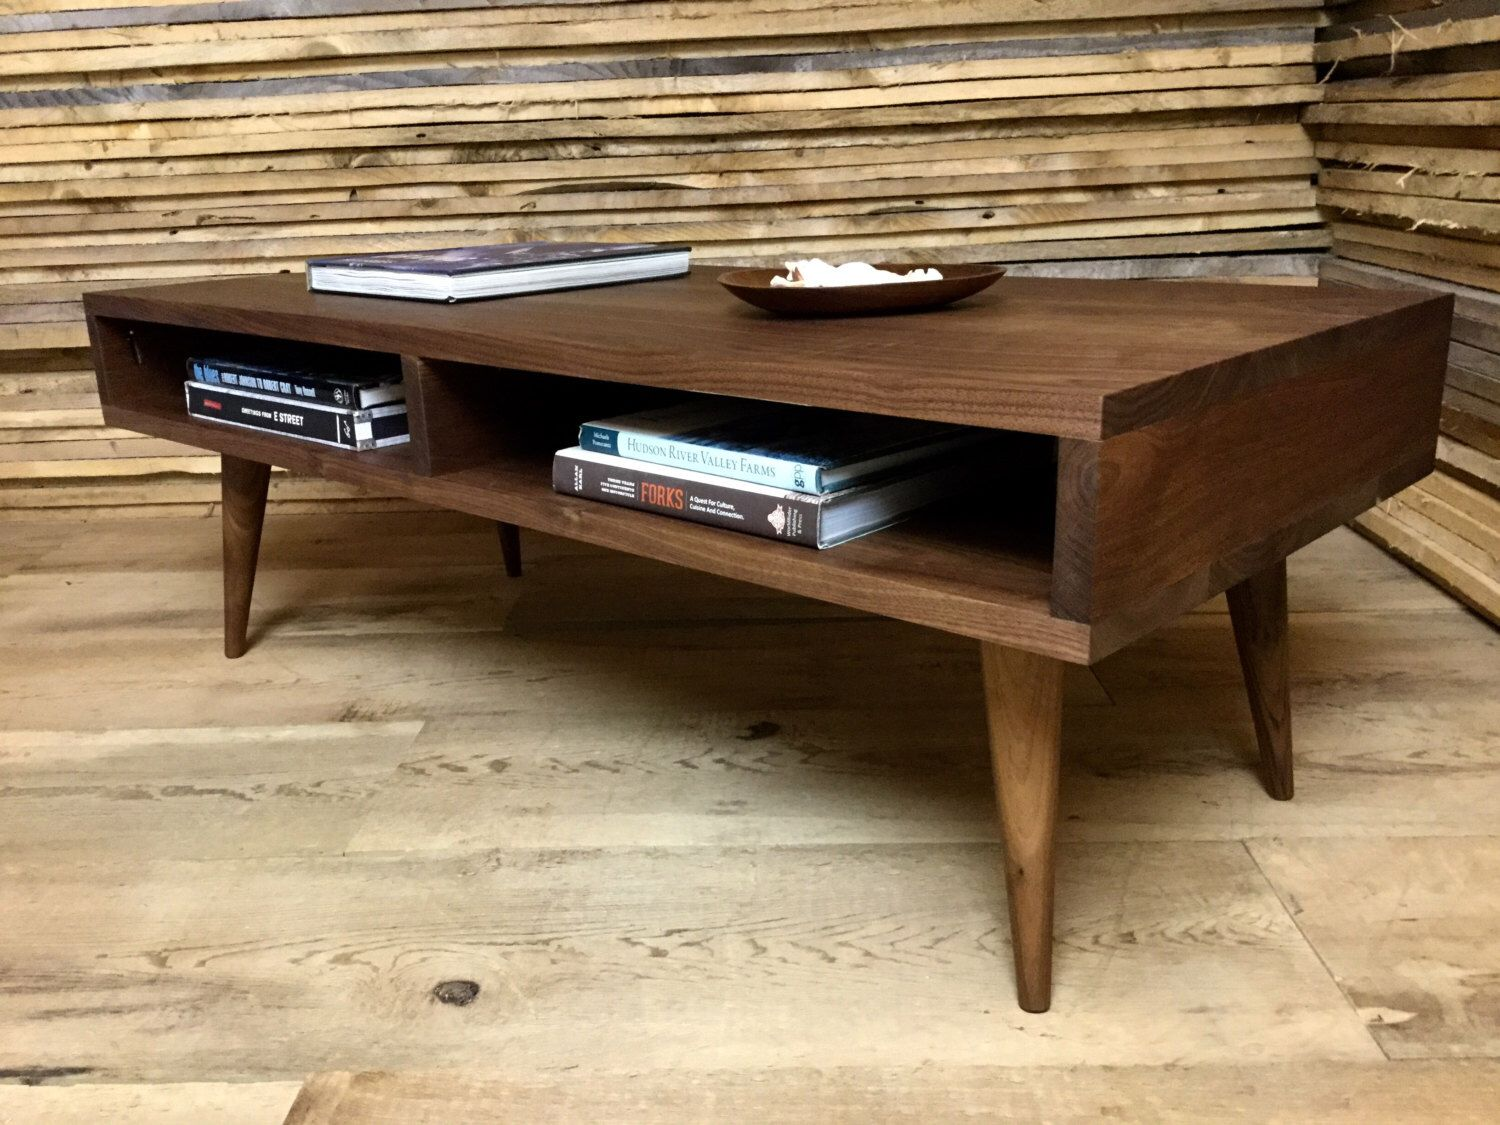 Boxer Mid Century Modern Coffee Table With Storage Featuring Black - Mid century modern coffee table with storage